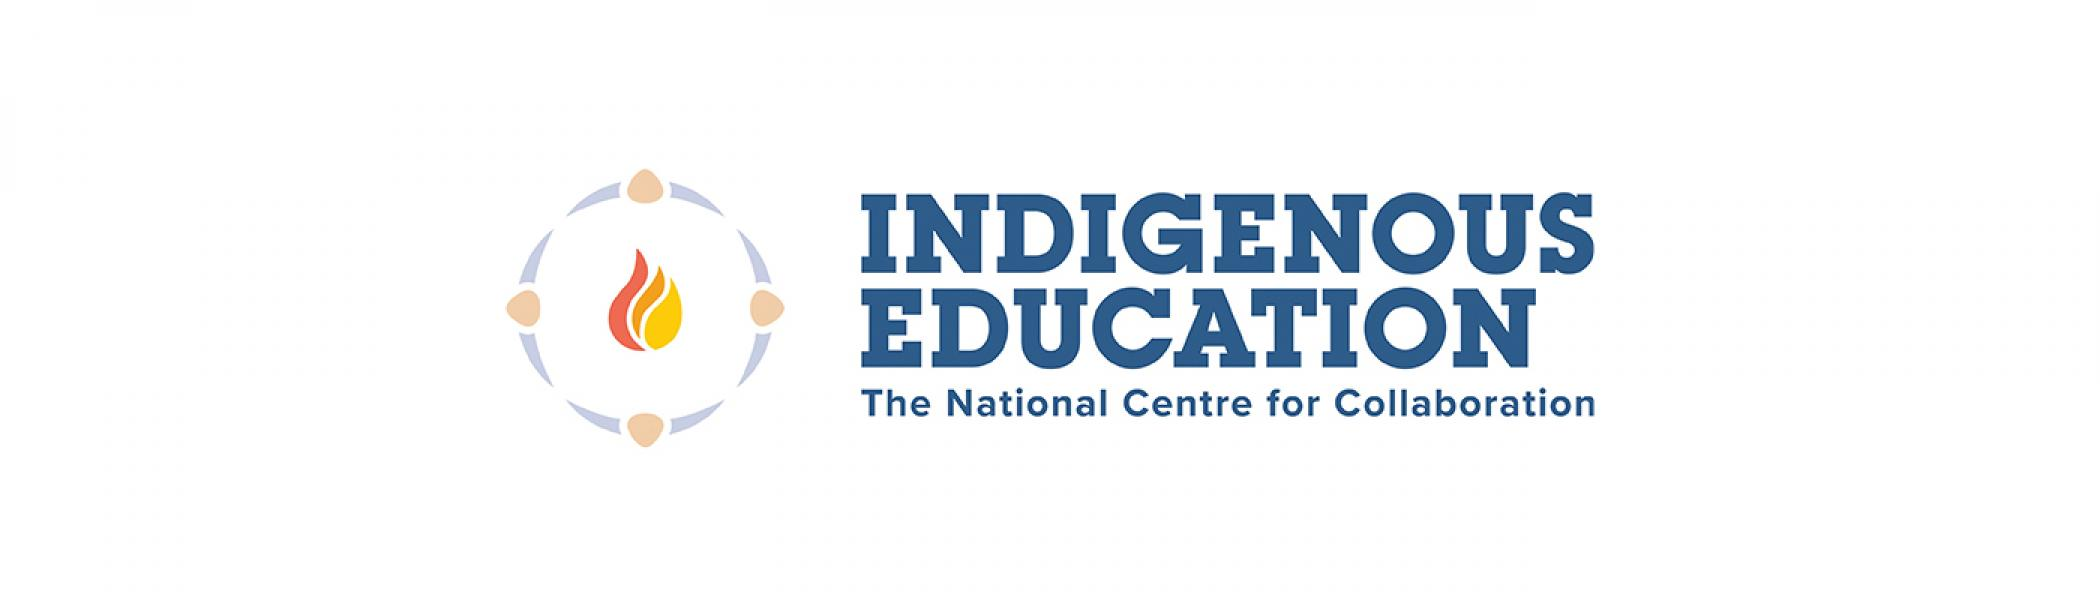 text that says Indigenous Education